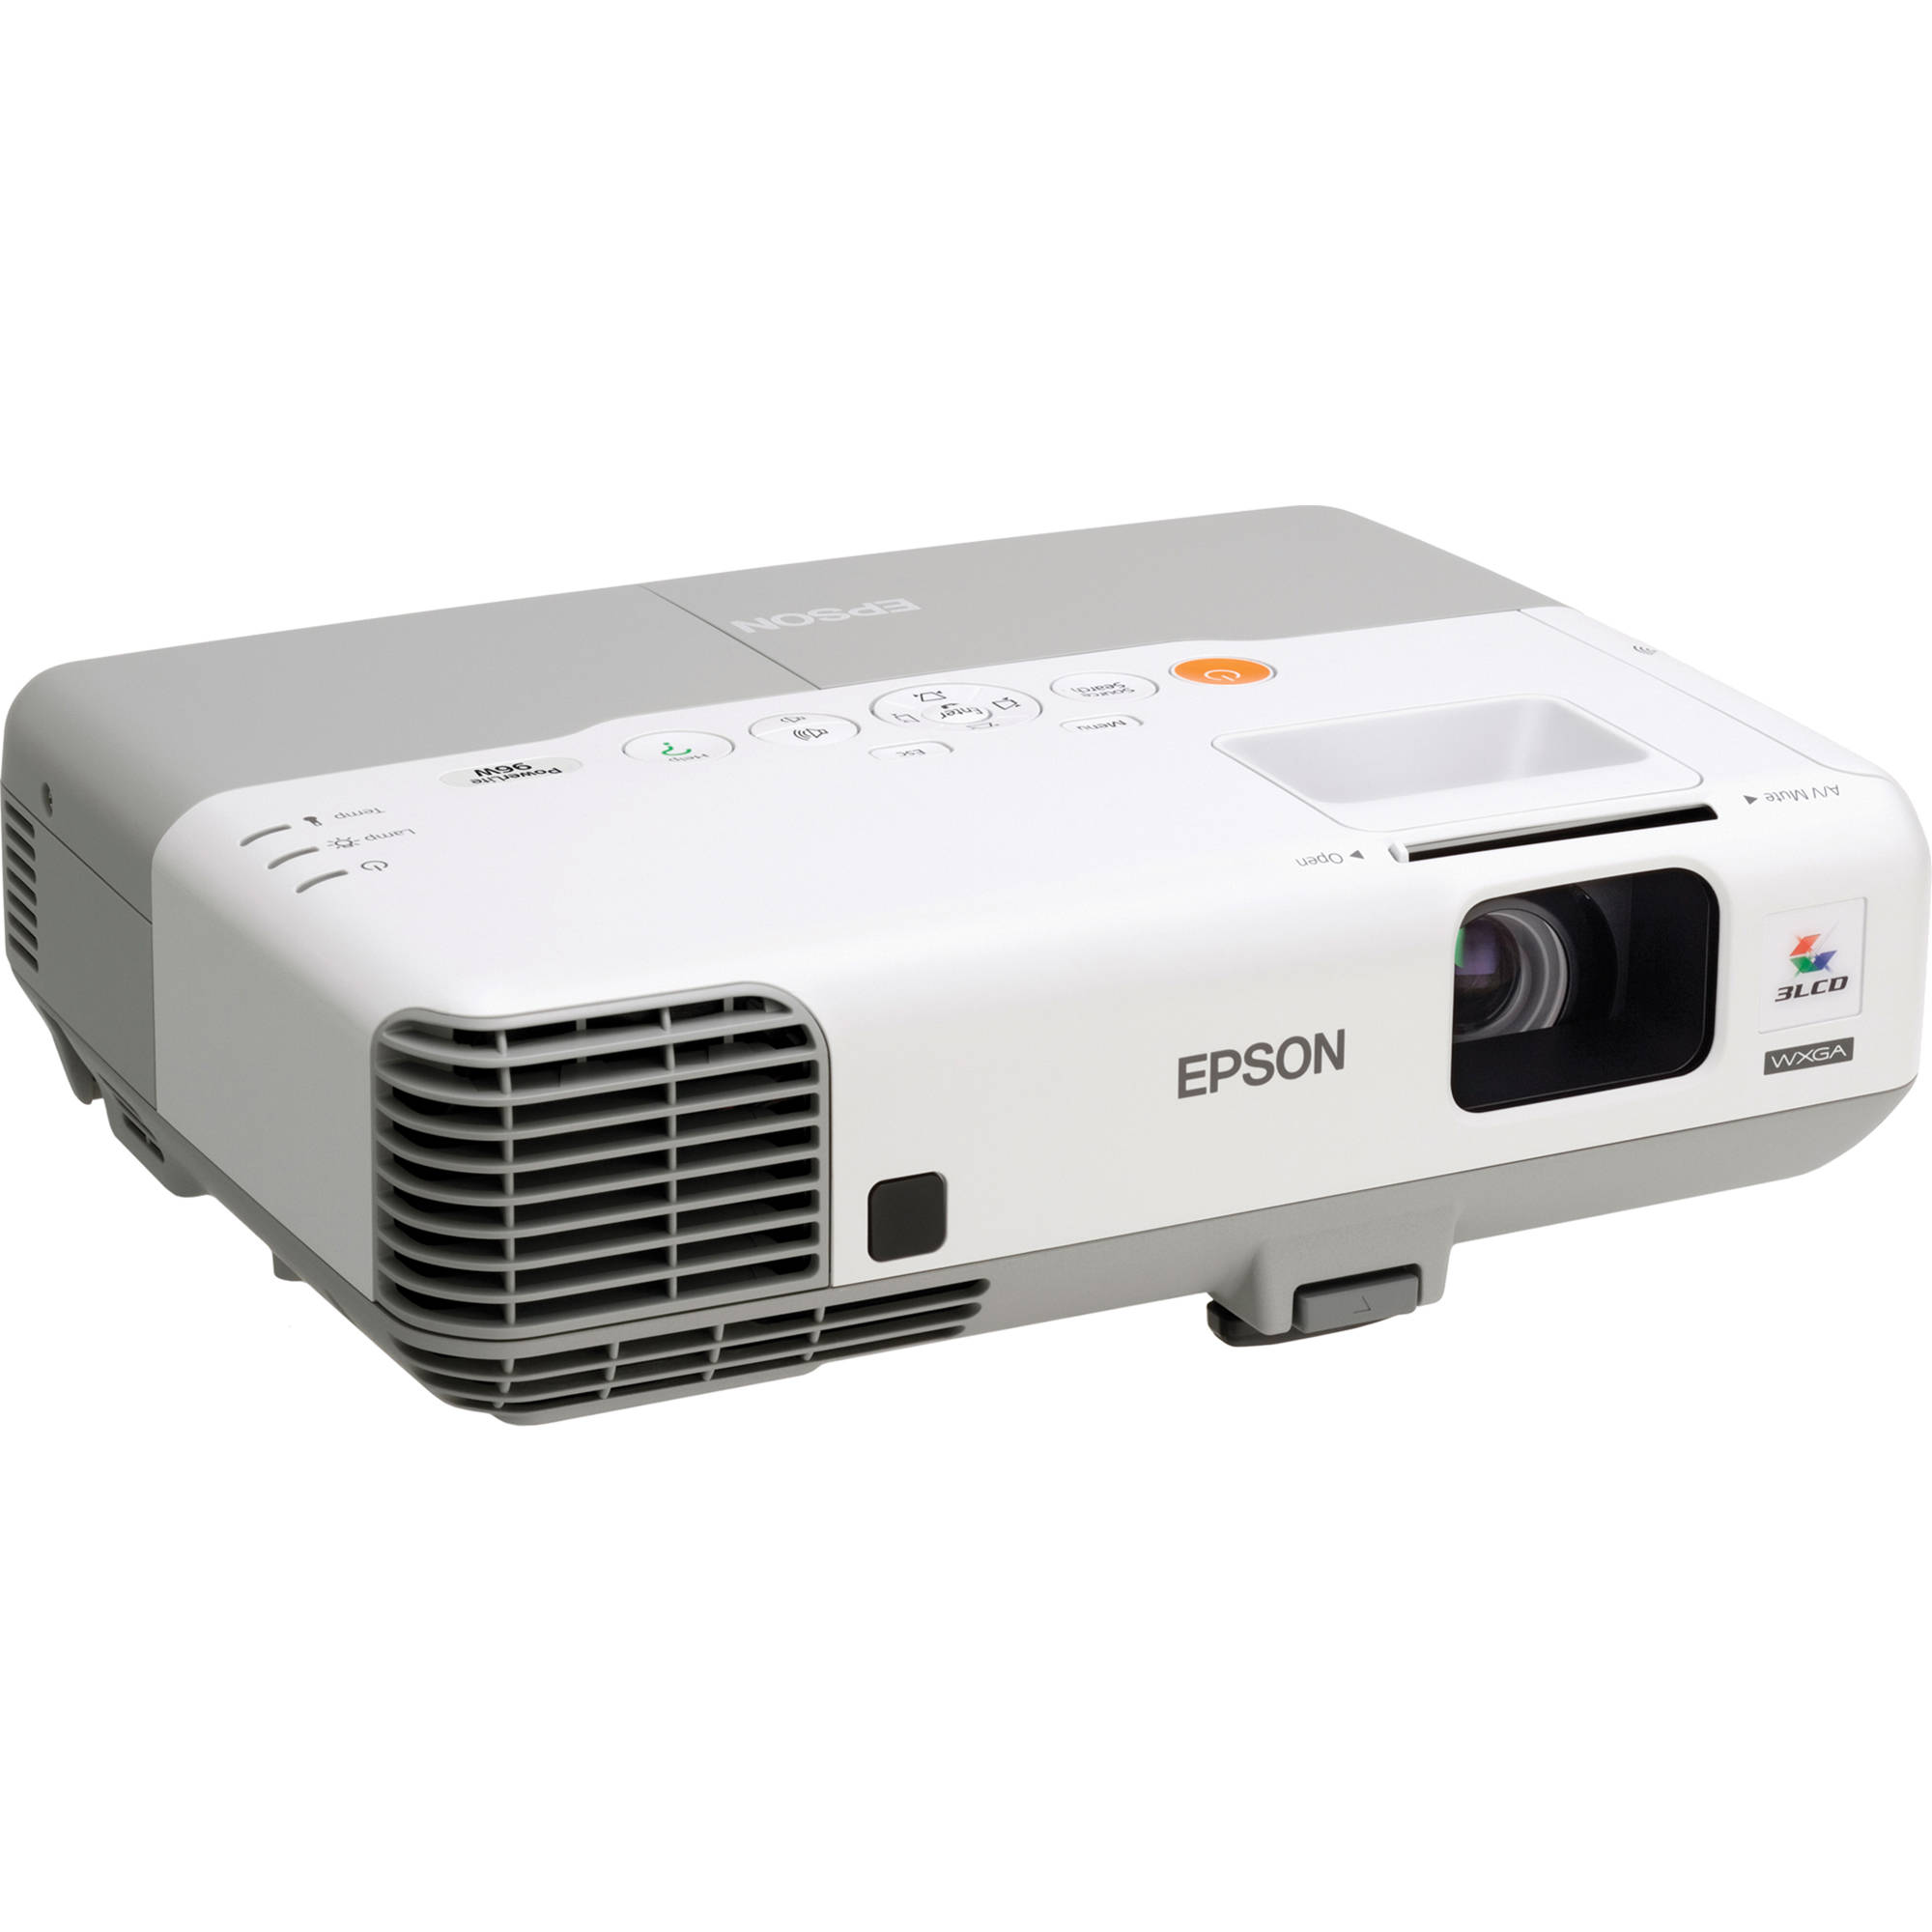 Mar10-Epson_V11H384020_PowerLite_96W_Multimedia_Projector_754477